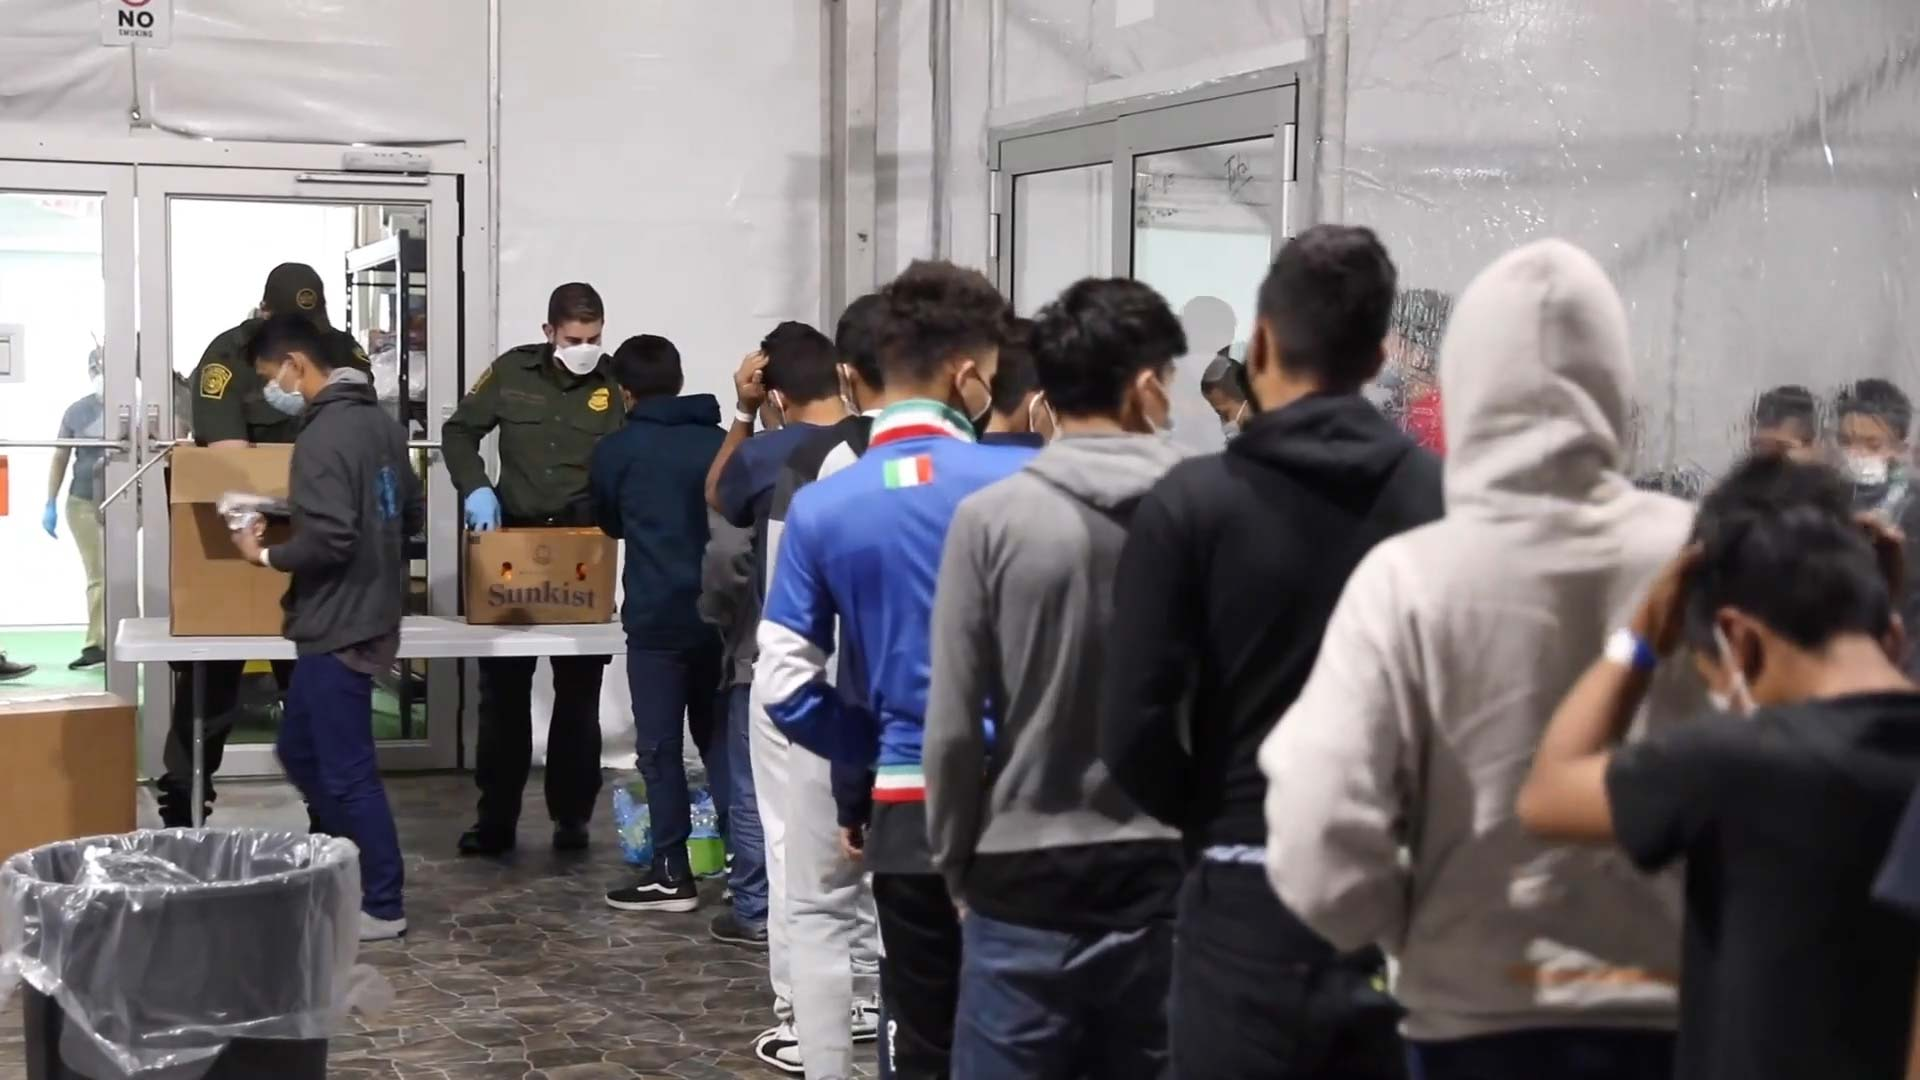 Unaccompanied minors apprehended by Customs and Border Protection line up inside a temporary processing facility in Donna, Texas on March 17, 2021.